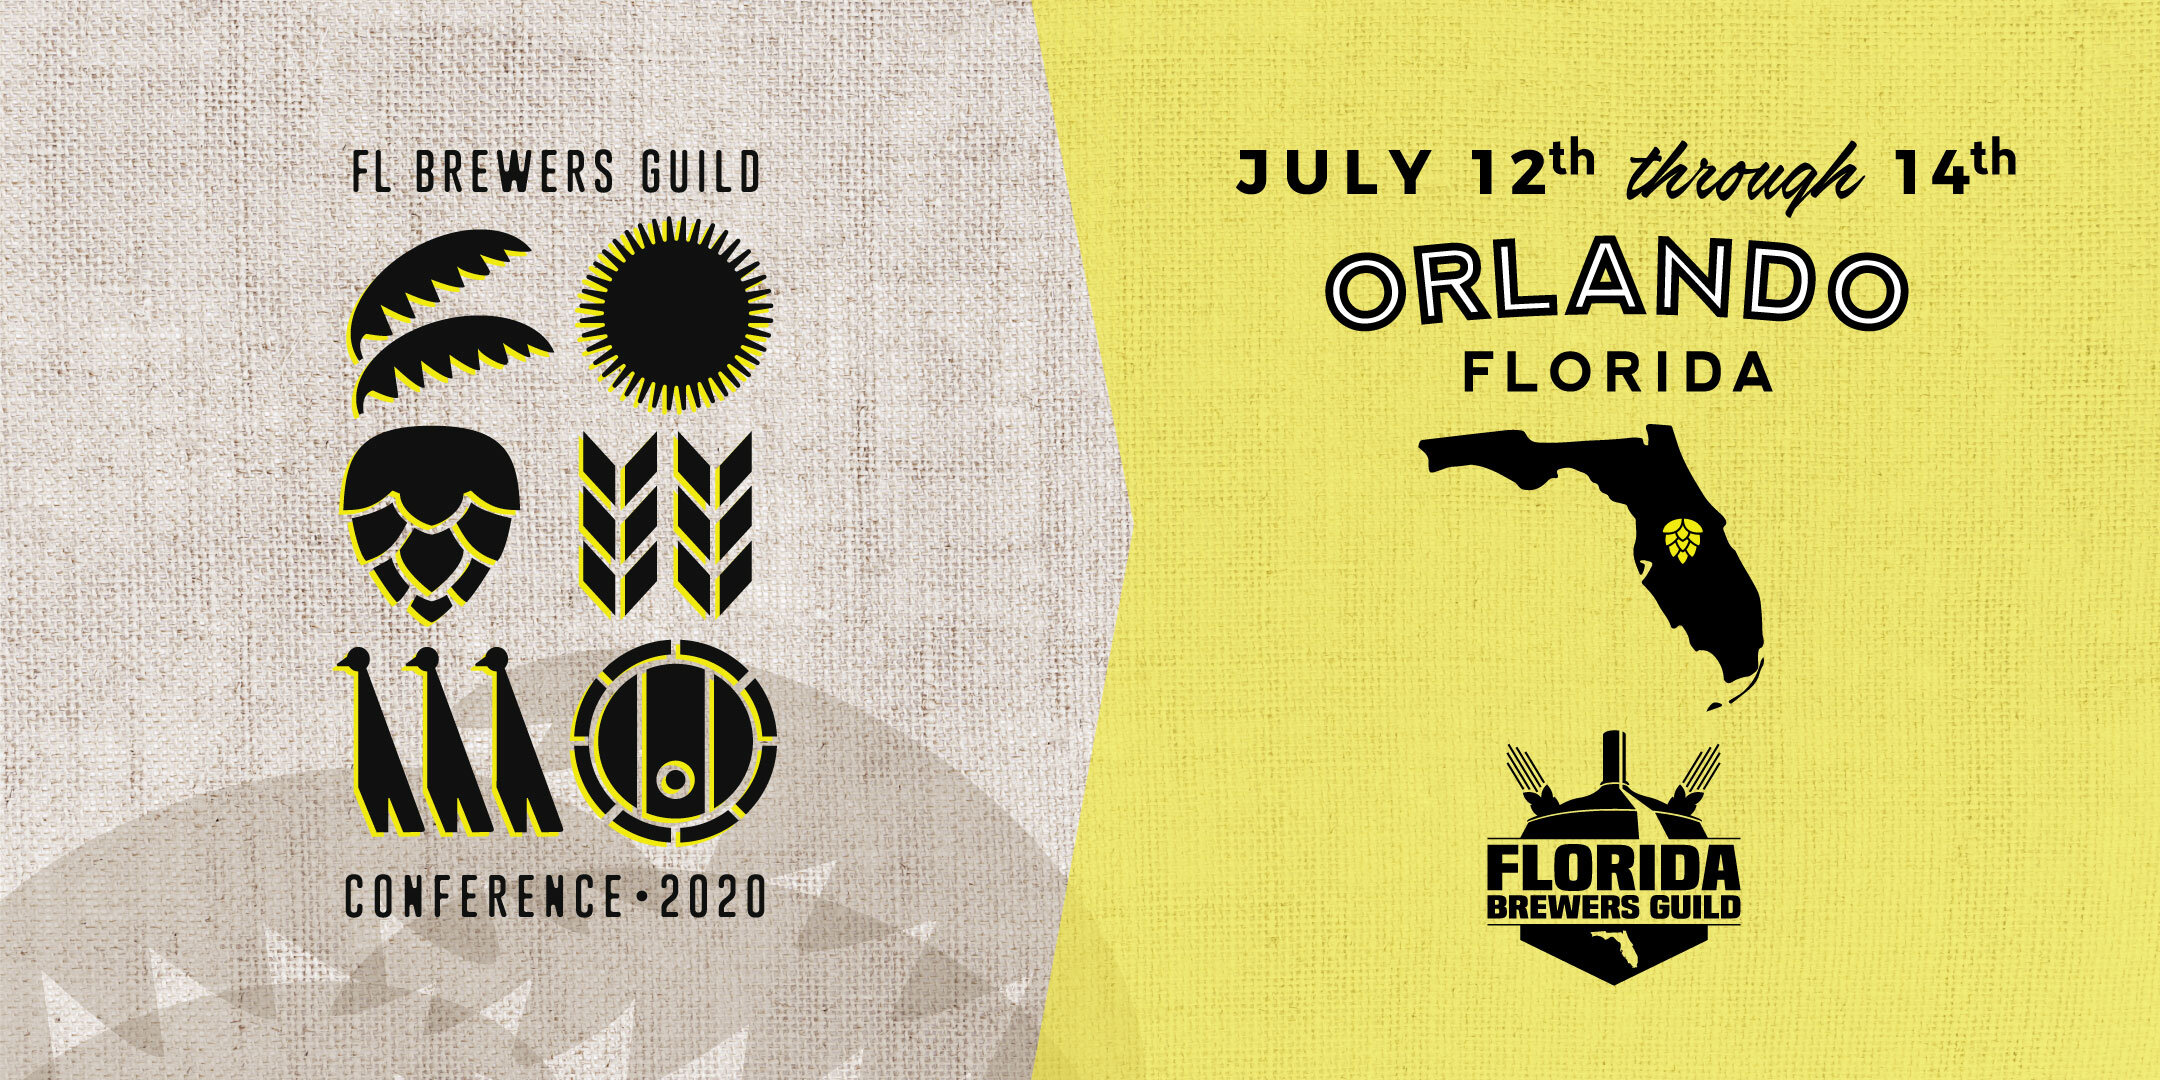 2020 Annual Conference Florida Brewers Guild